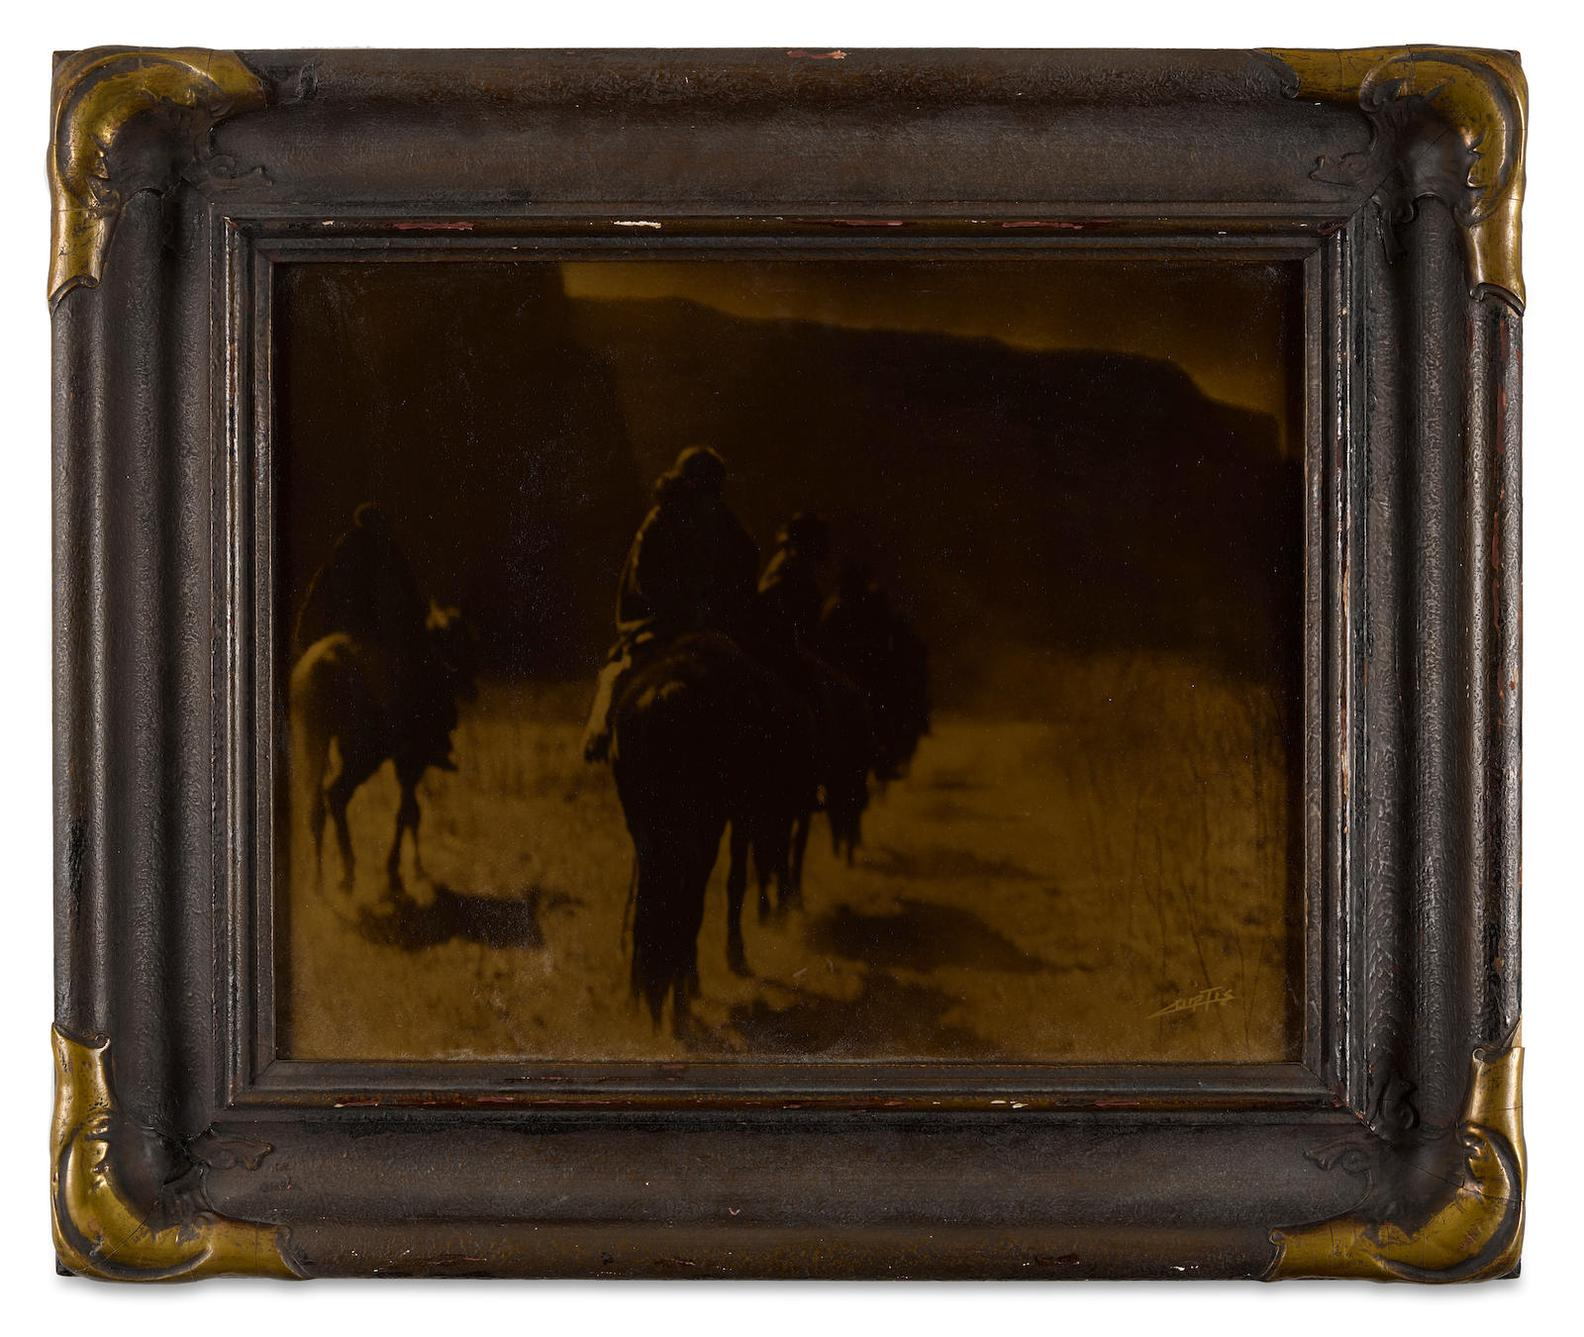 Edward S. Curtis-The Vanishing Race-1904